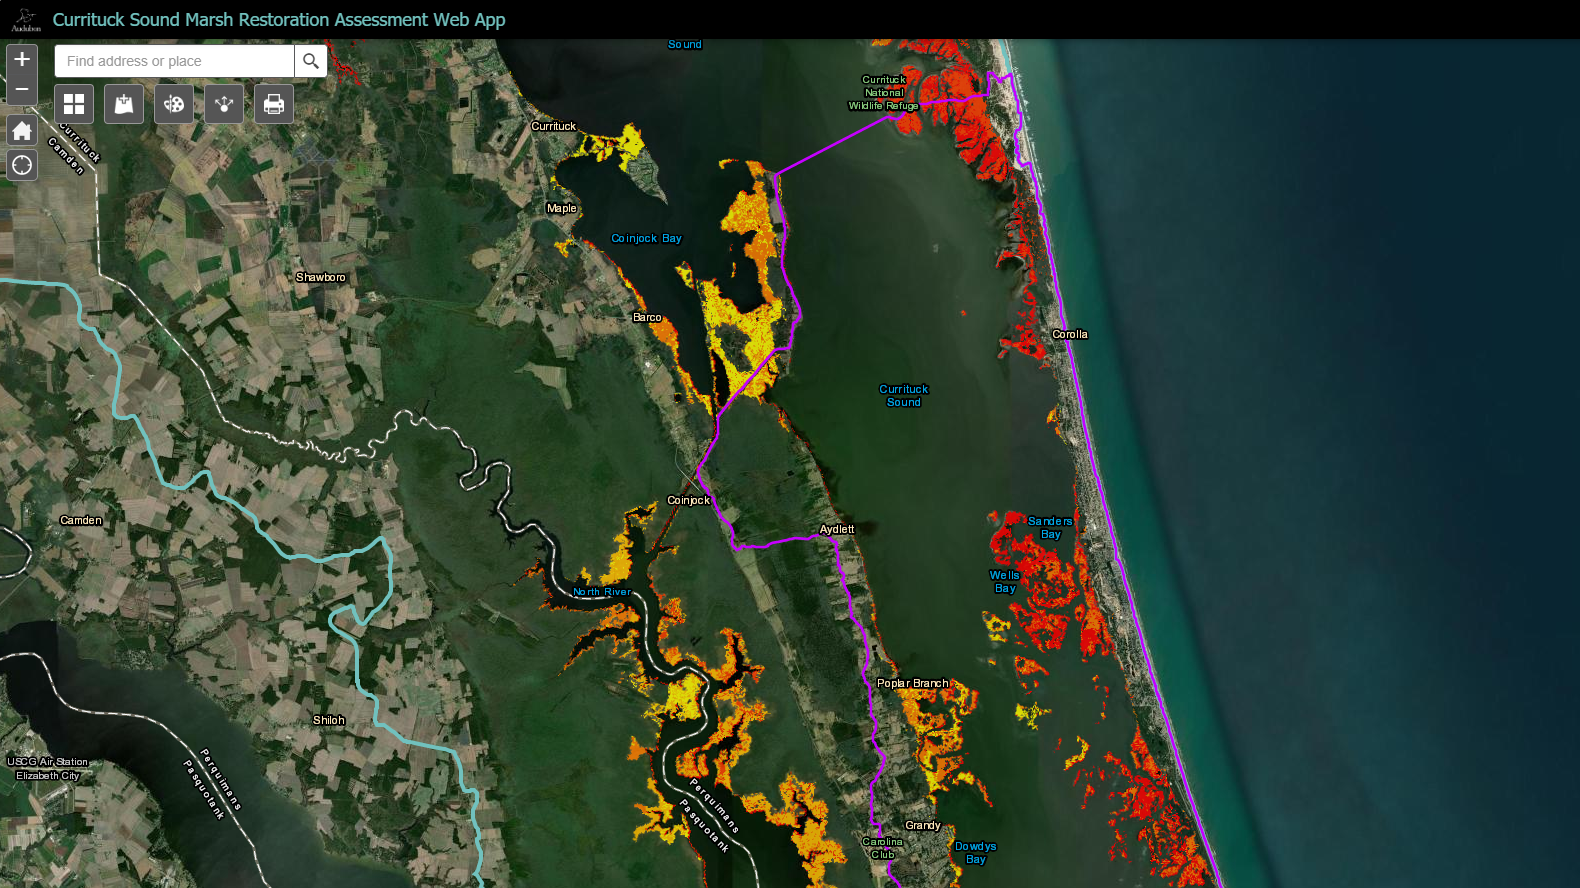 The Currituck Sound Marsh Restoration Assessment Web App.